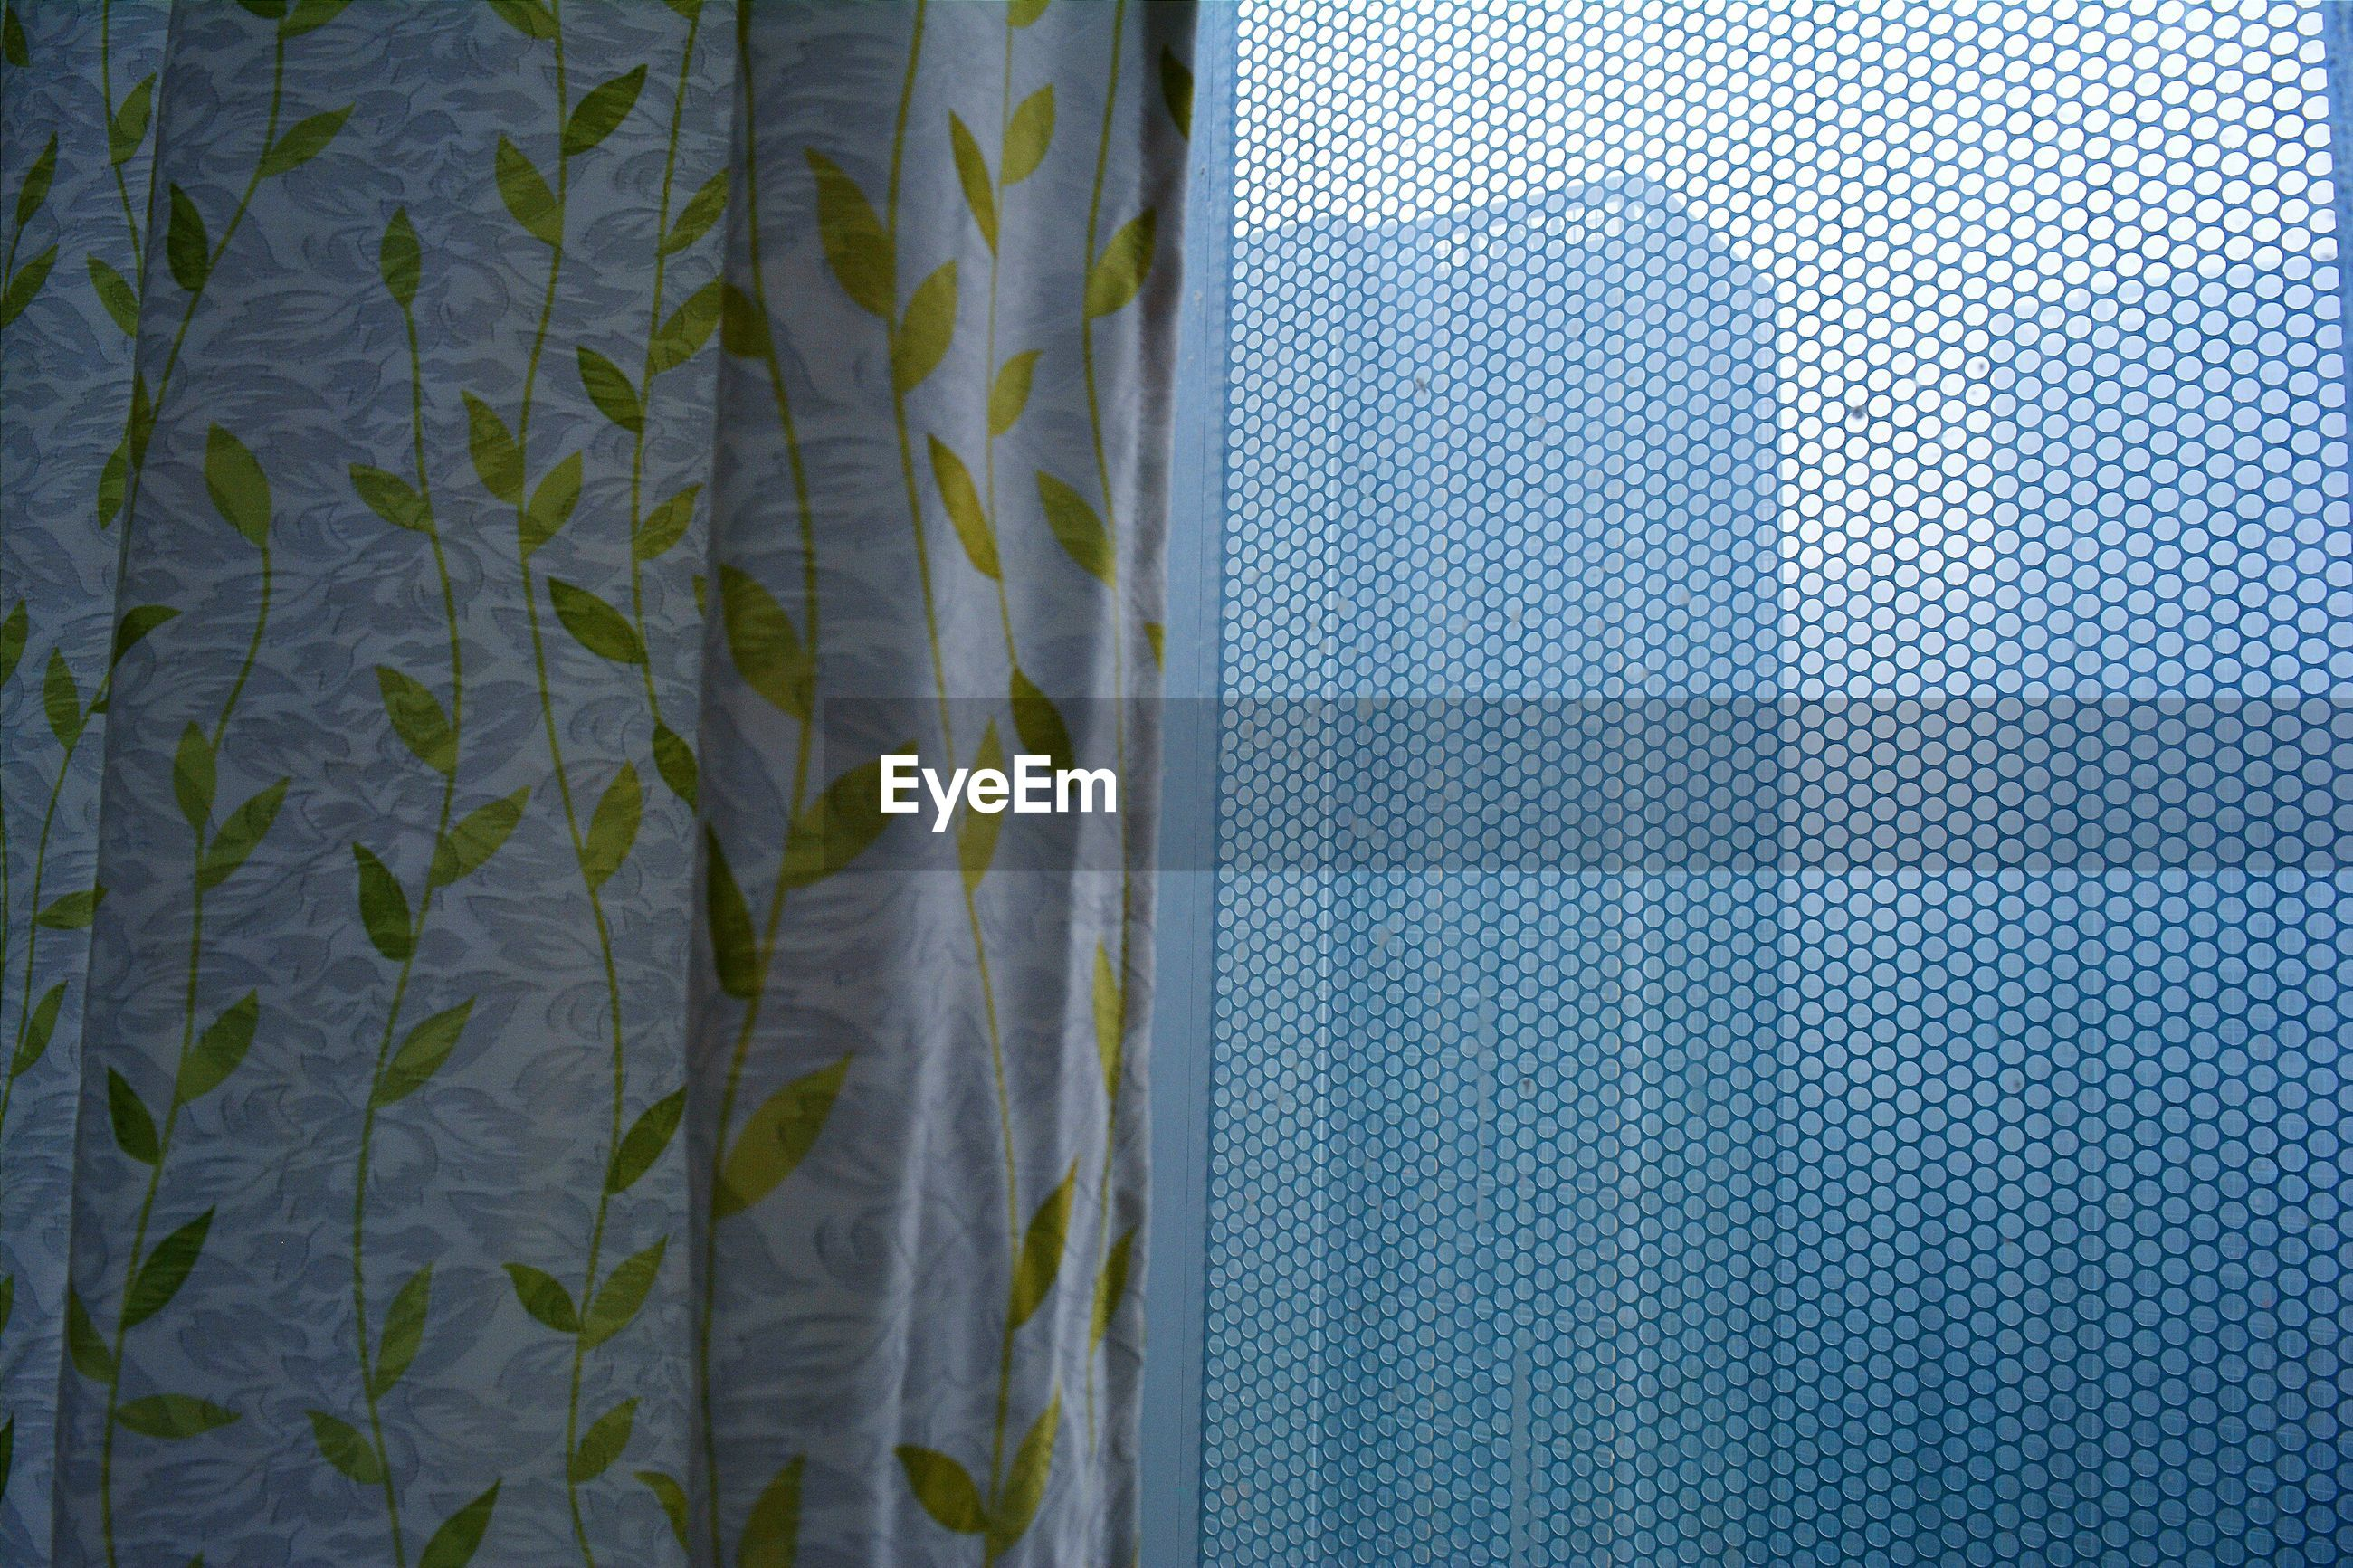 Curtain against netted window